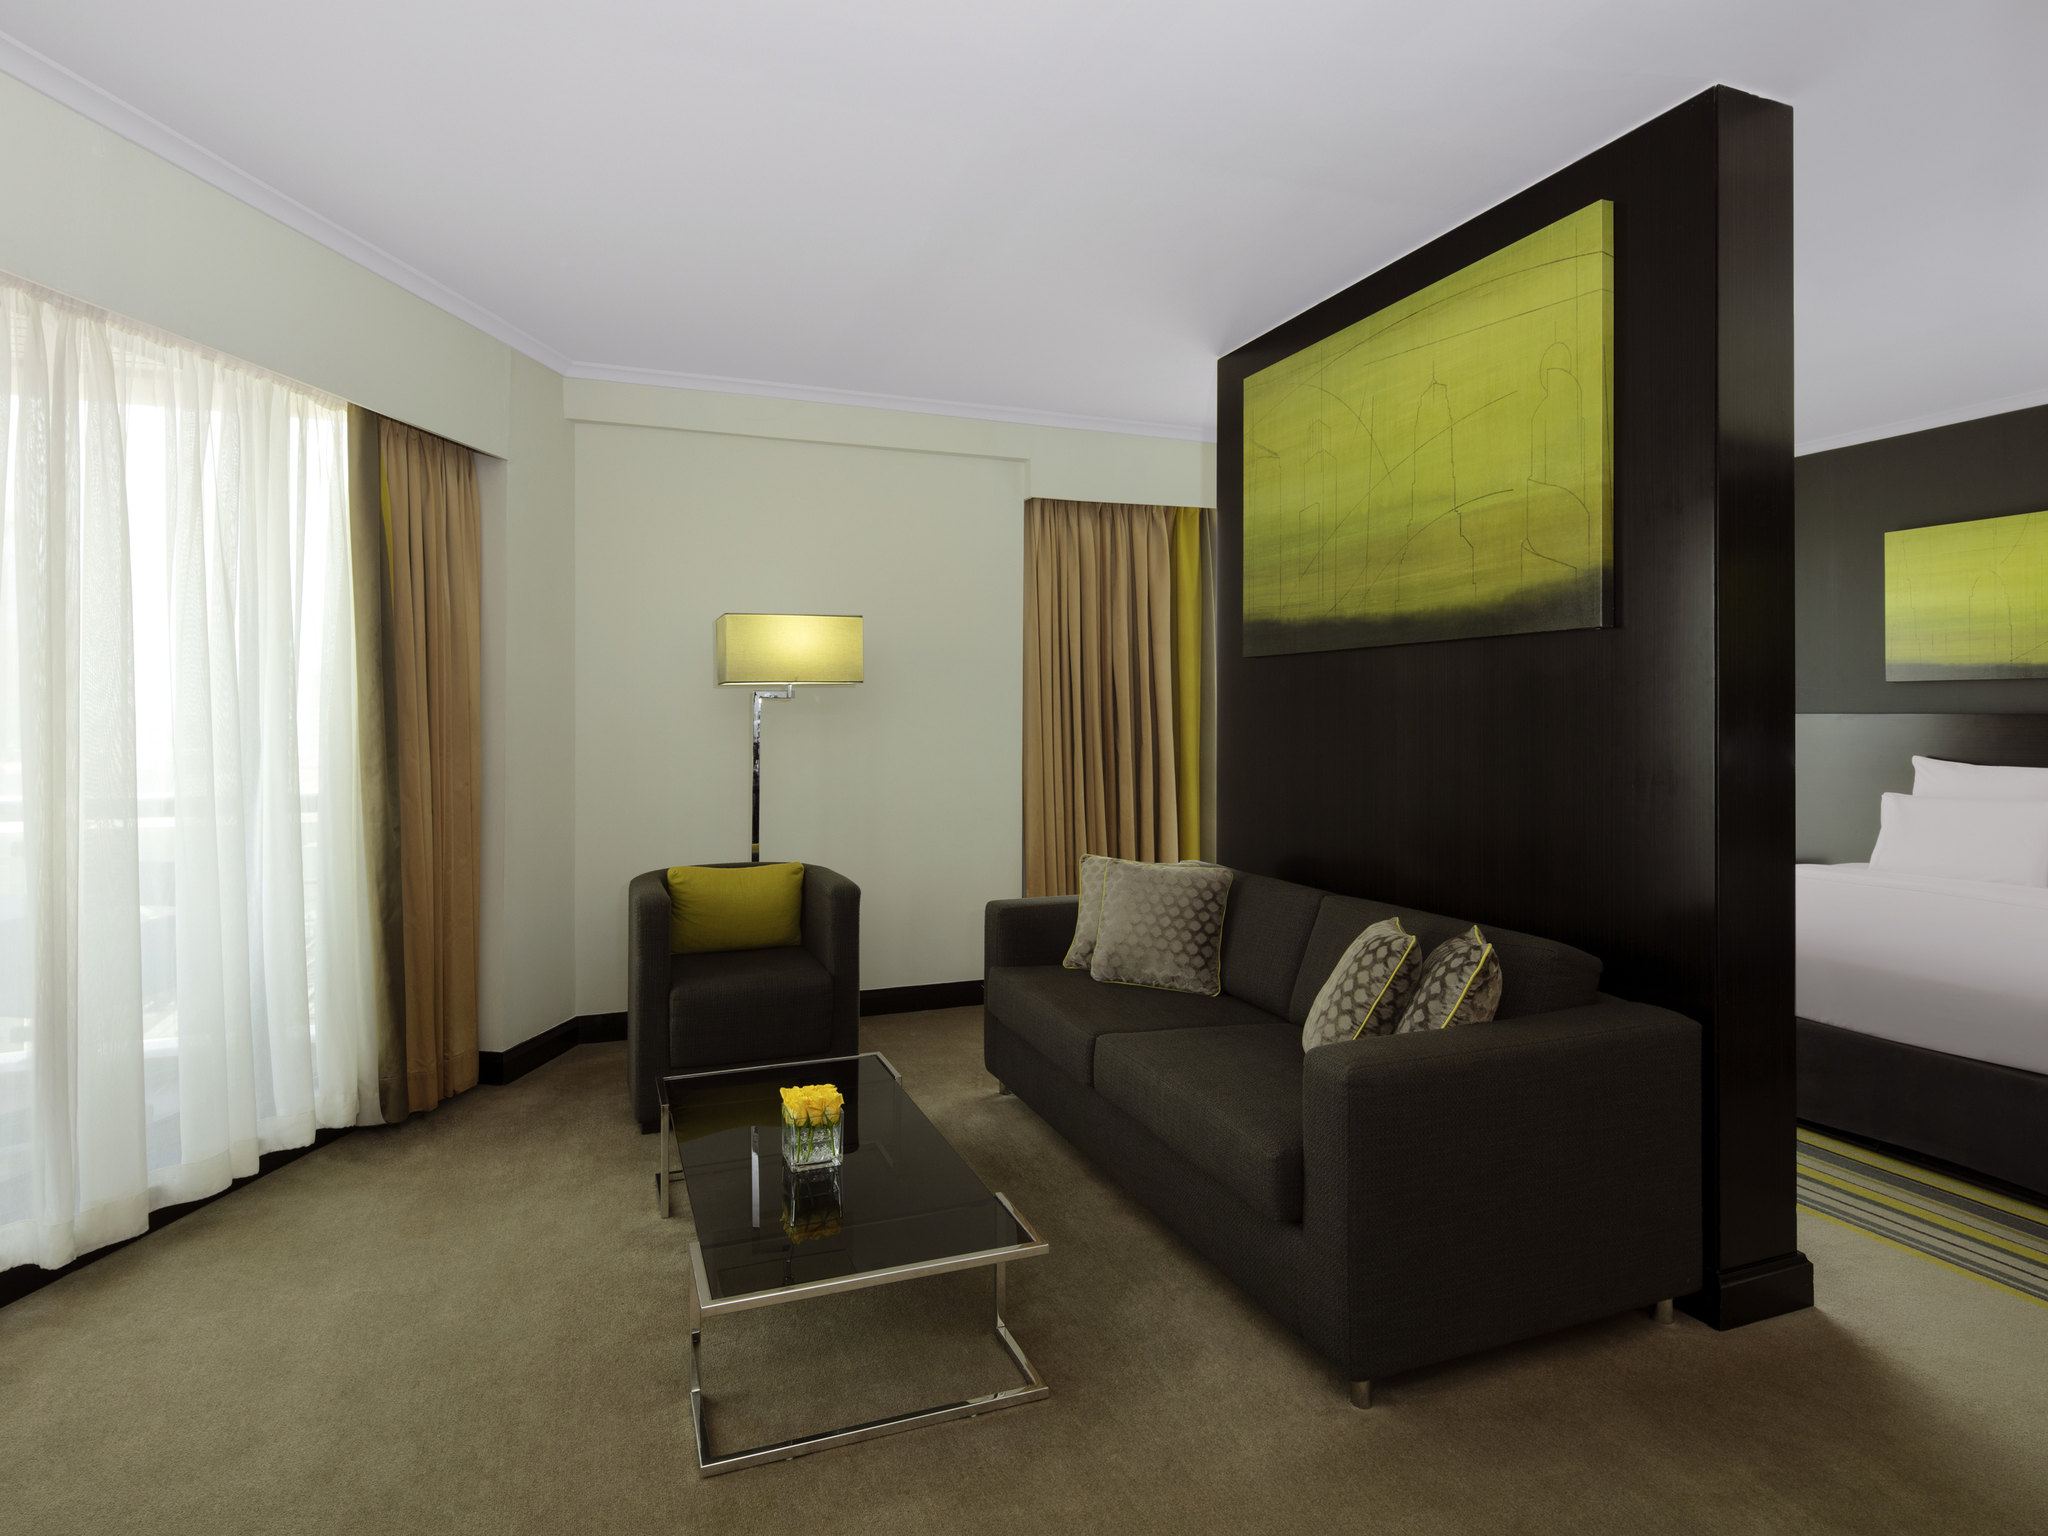 5 Star Hotel In Dubai Pullman Creek City Centre Picture Frame Geek Home Decor Yellow Circuit Board Photo Rooms